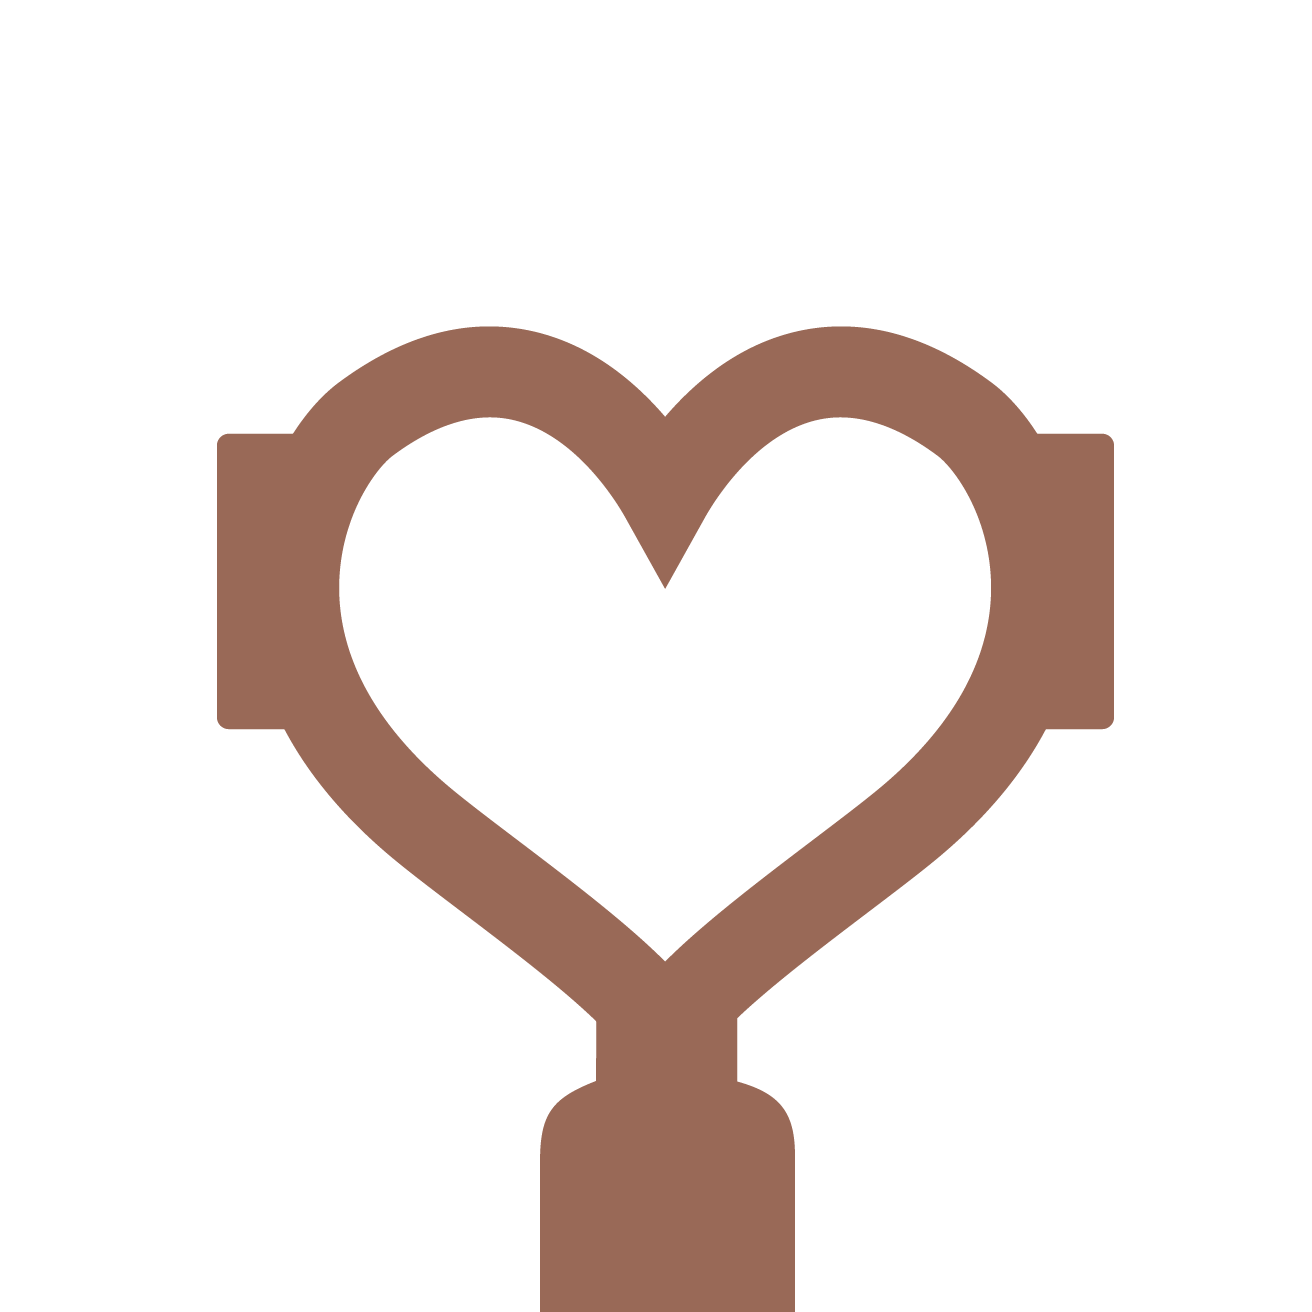 Rocket Espresso BOXER One Group Compact Commercial Coffee Machine